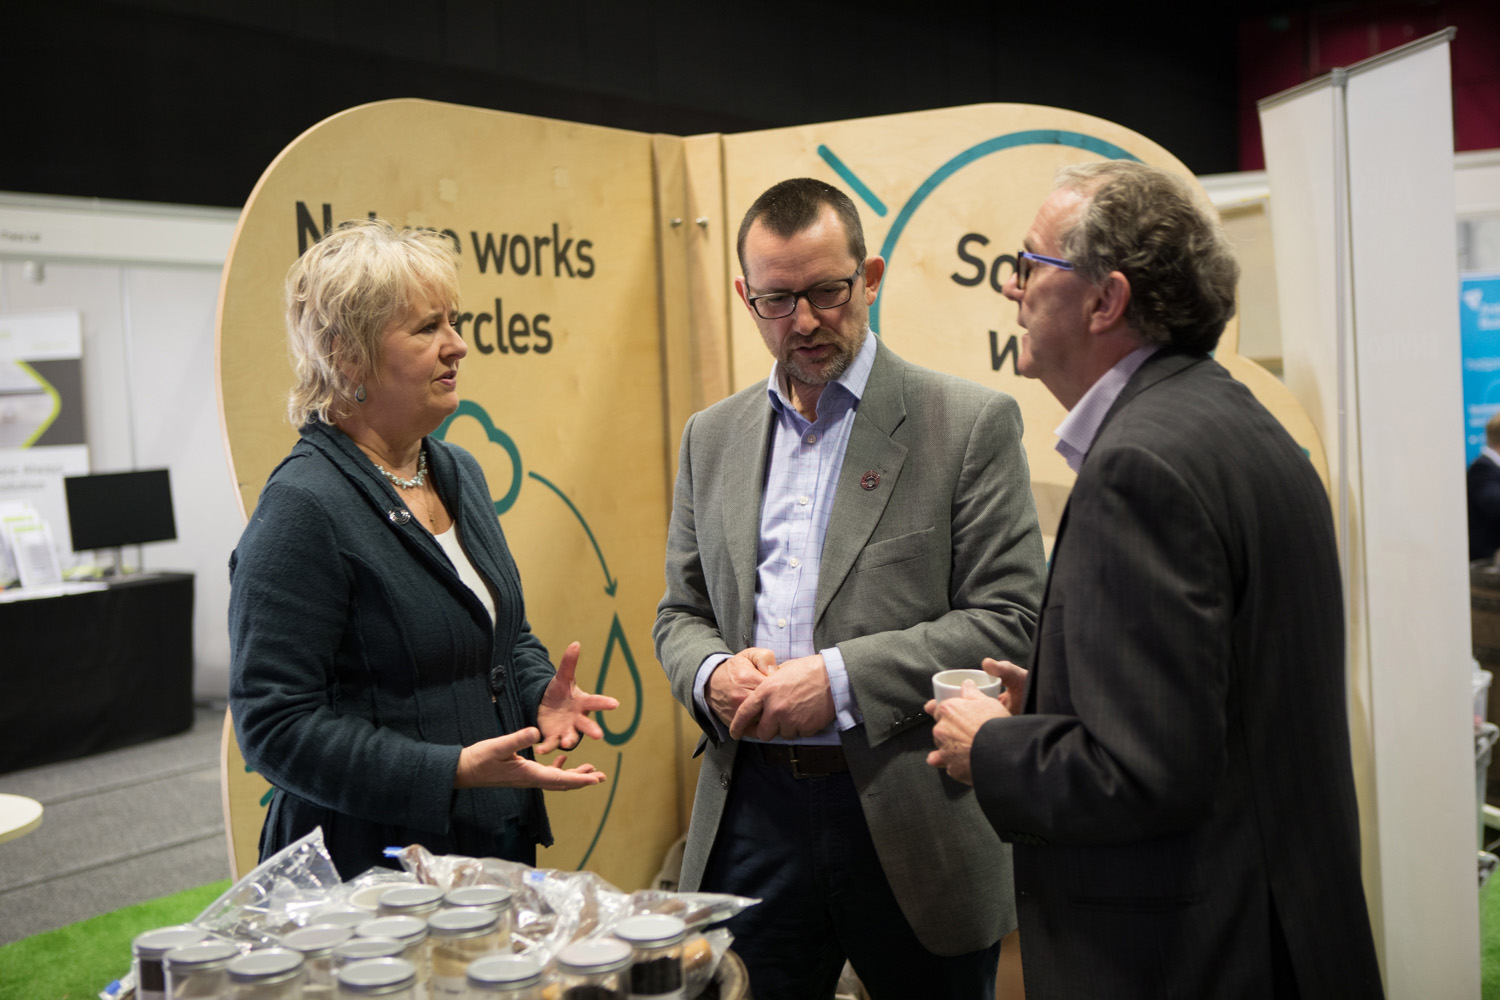 Roseanna Cunningham, Cabinet Secretary for the Environment, Climate Change and Land Reform visiting the Zero Waste Scotland stand